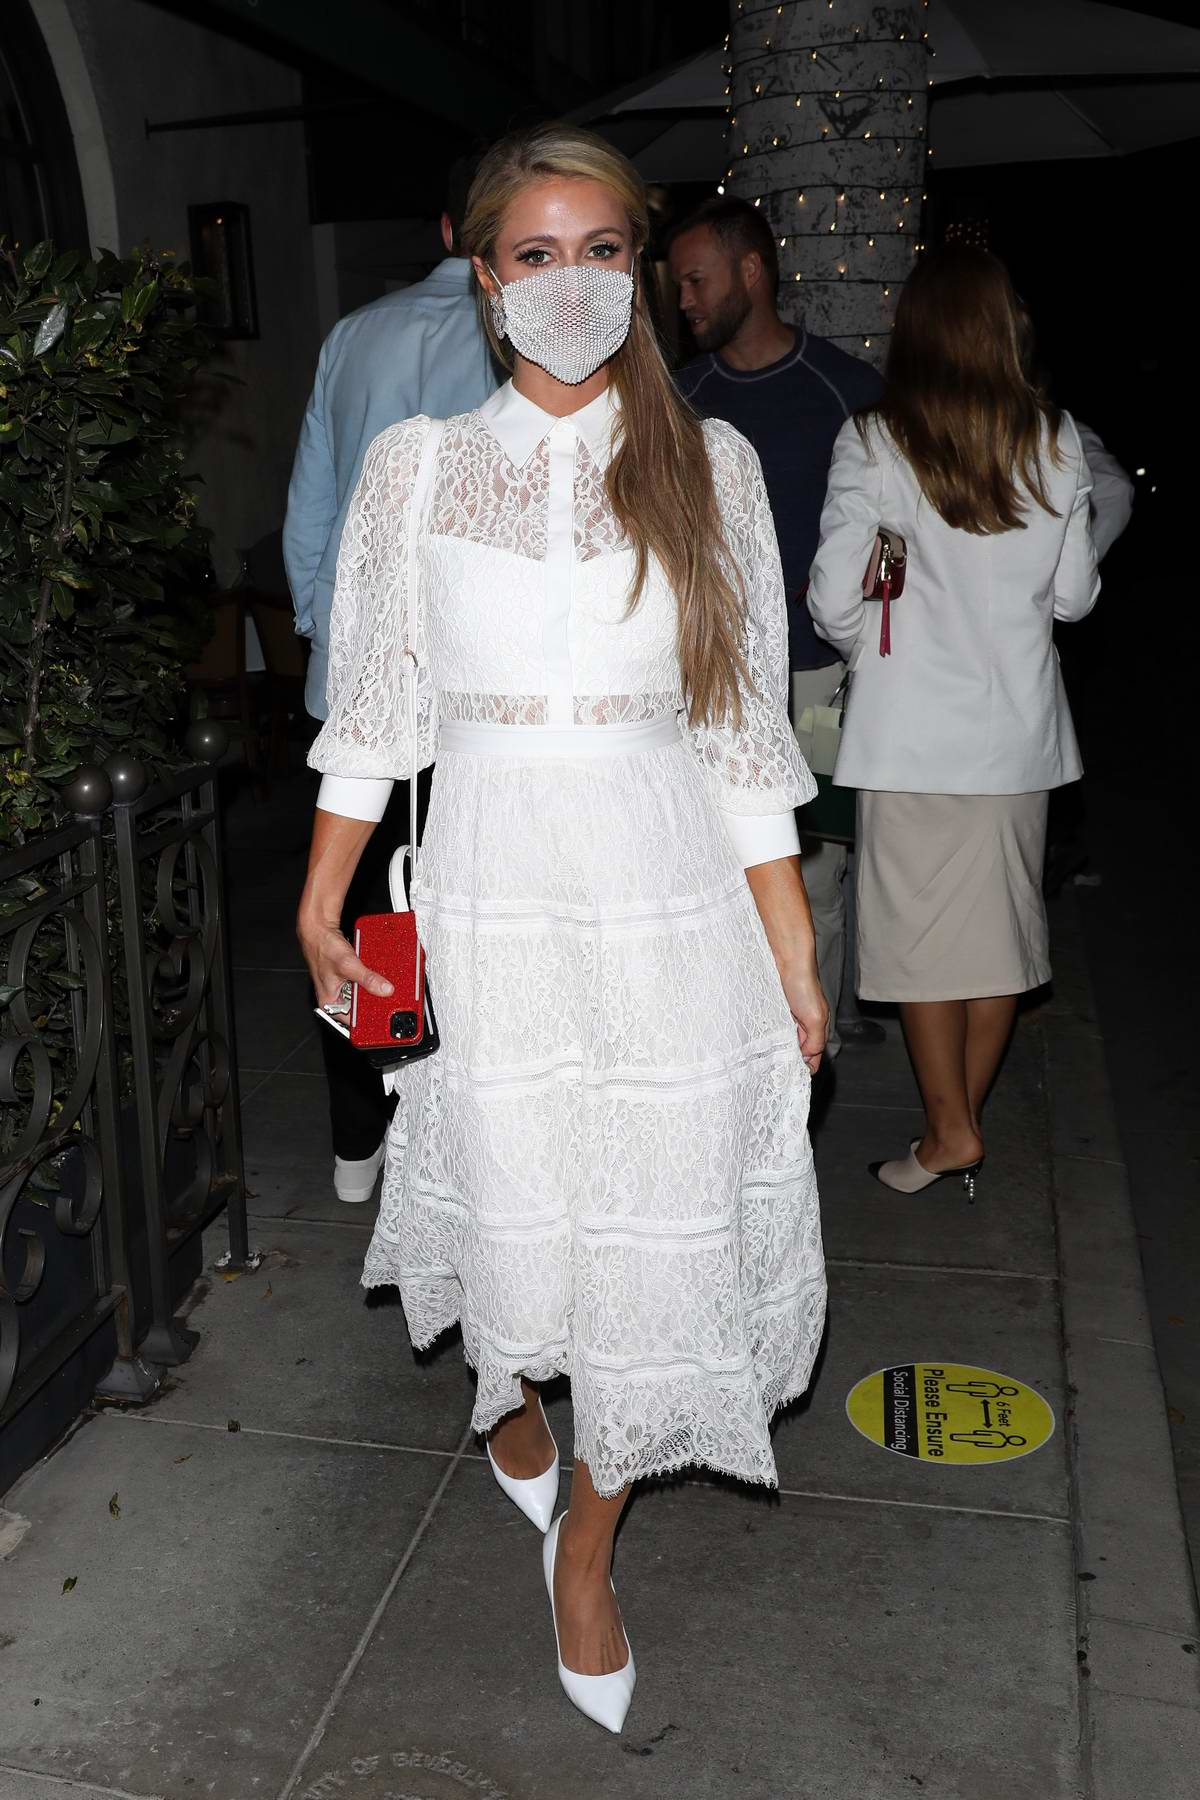 Paris Hilton looks great in a white dress as she grabs dinner with friends at Madeo restaurant in Beverly Hills, California